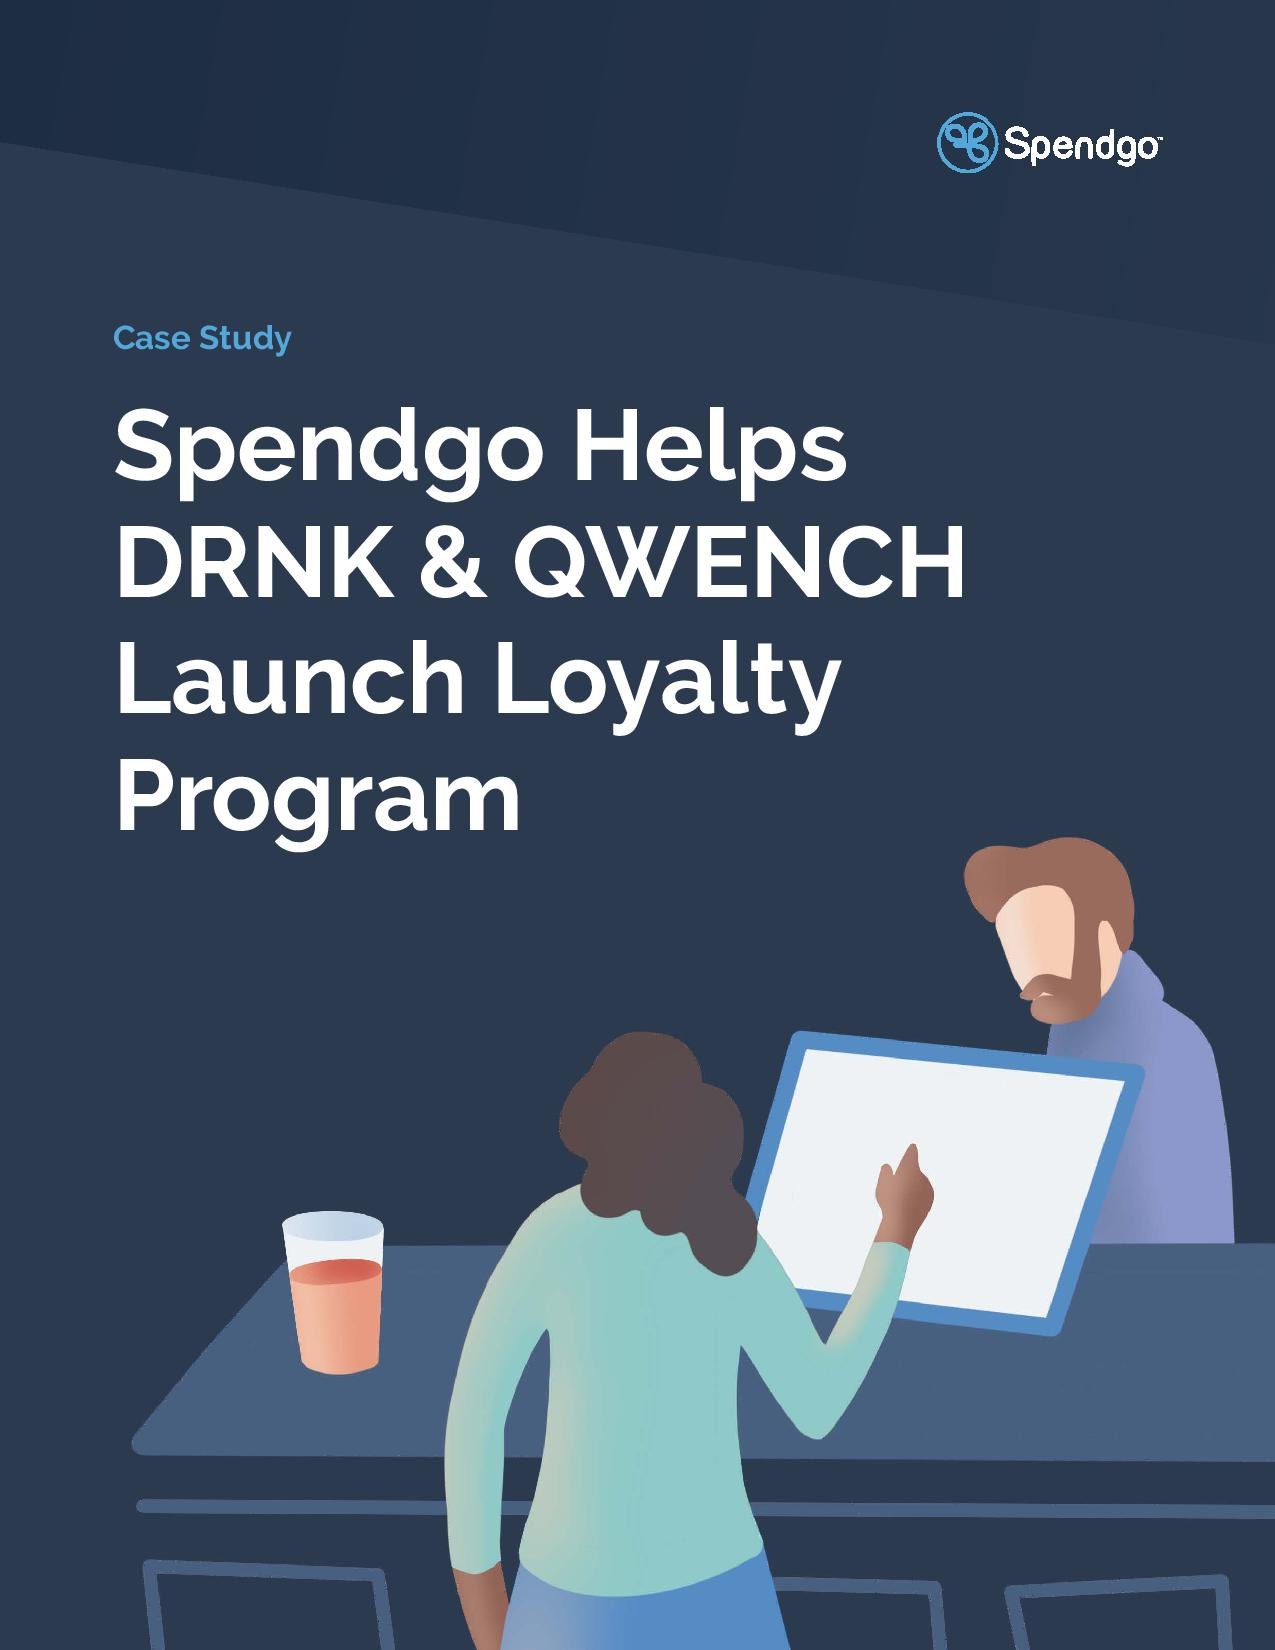 Spendgo Helps DRNK & QWENCH Launch Loyalty Program